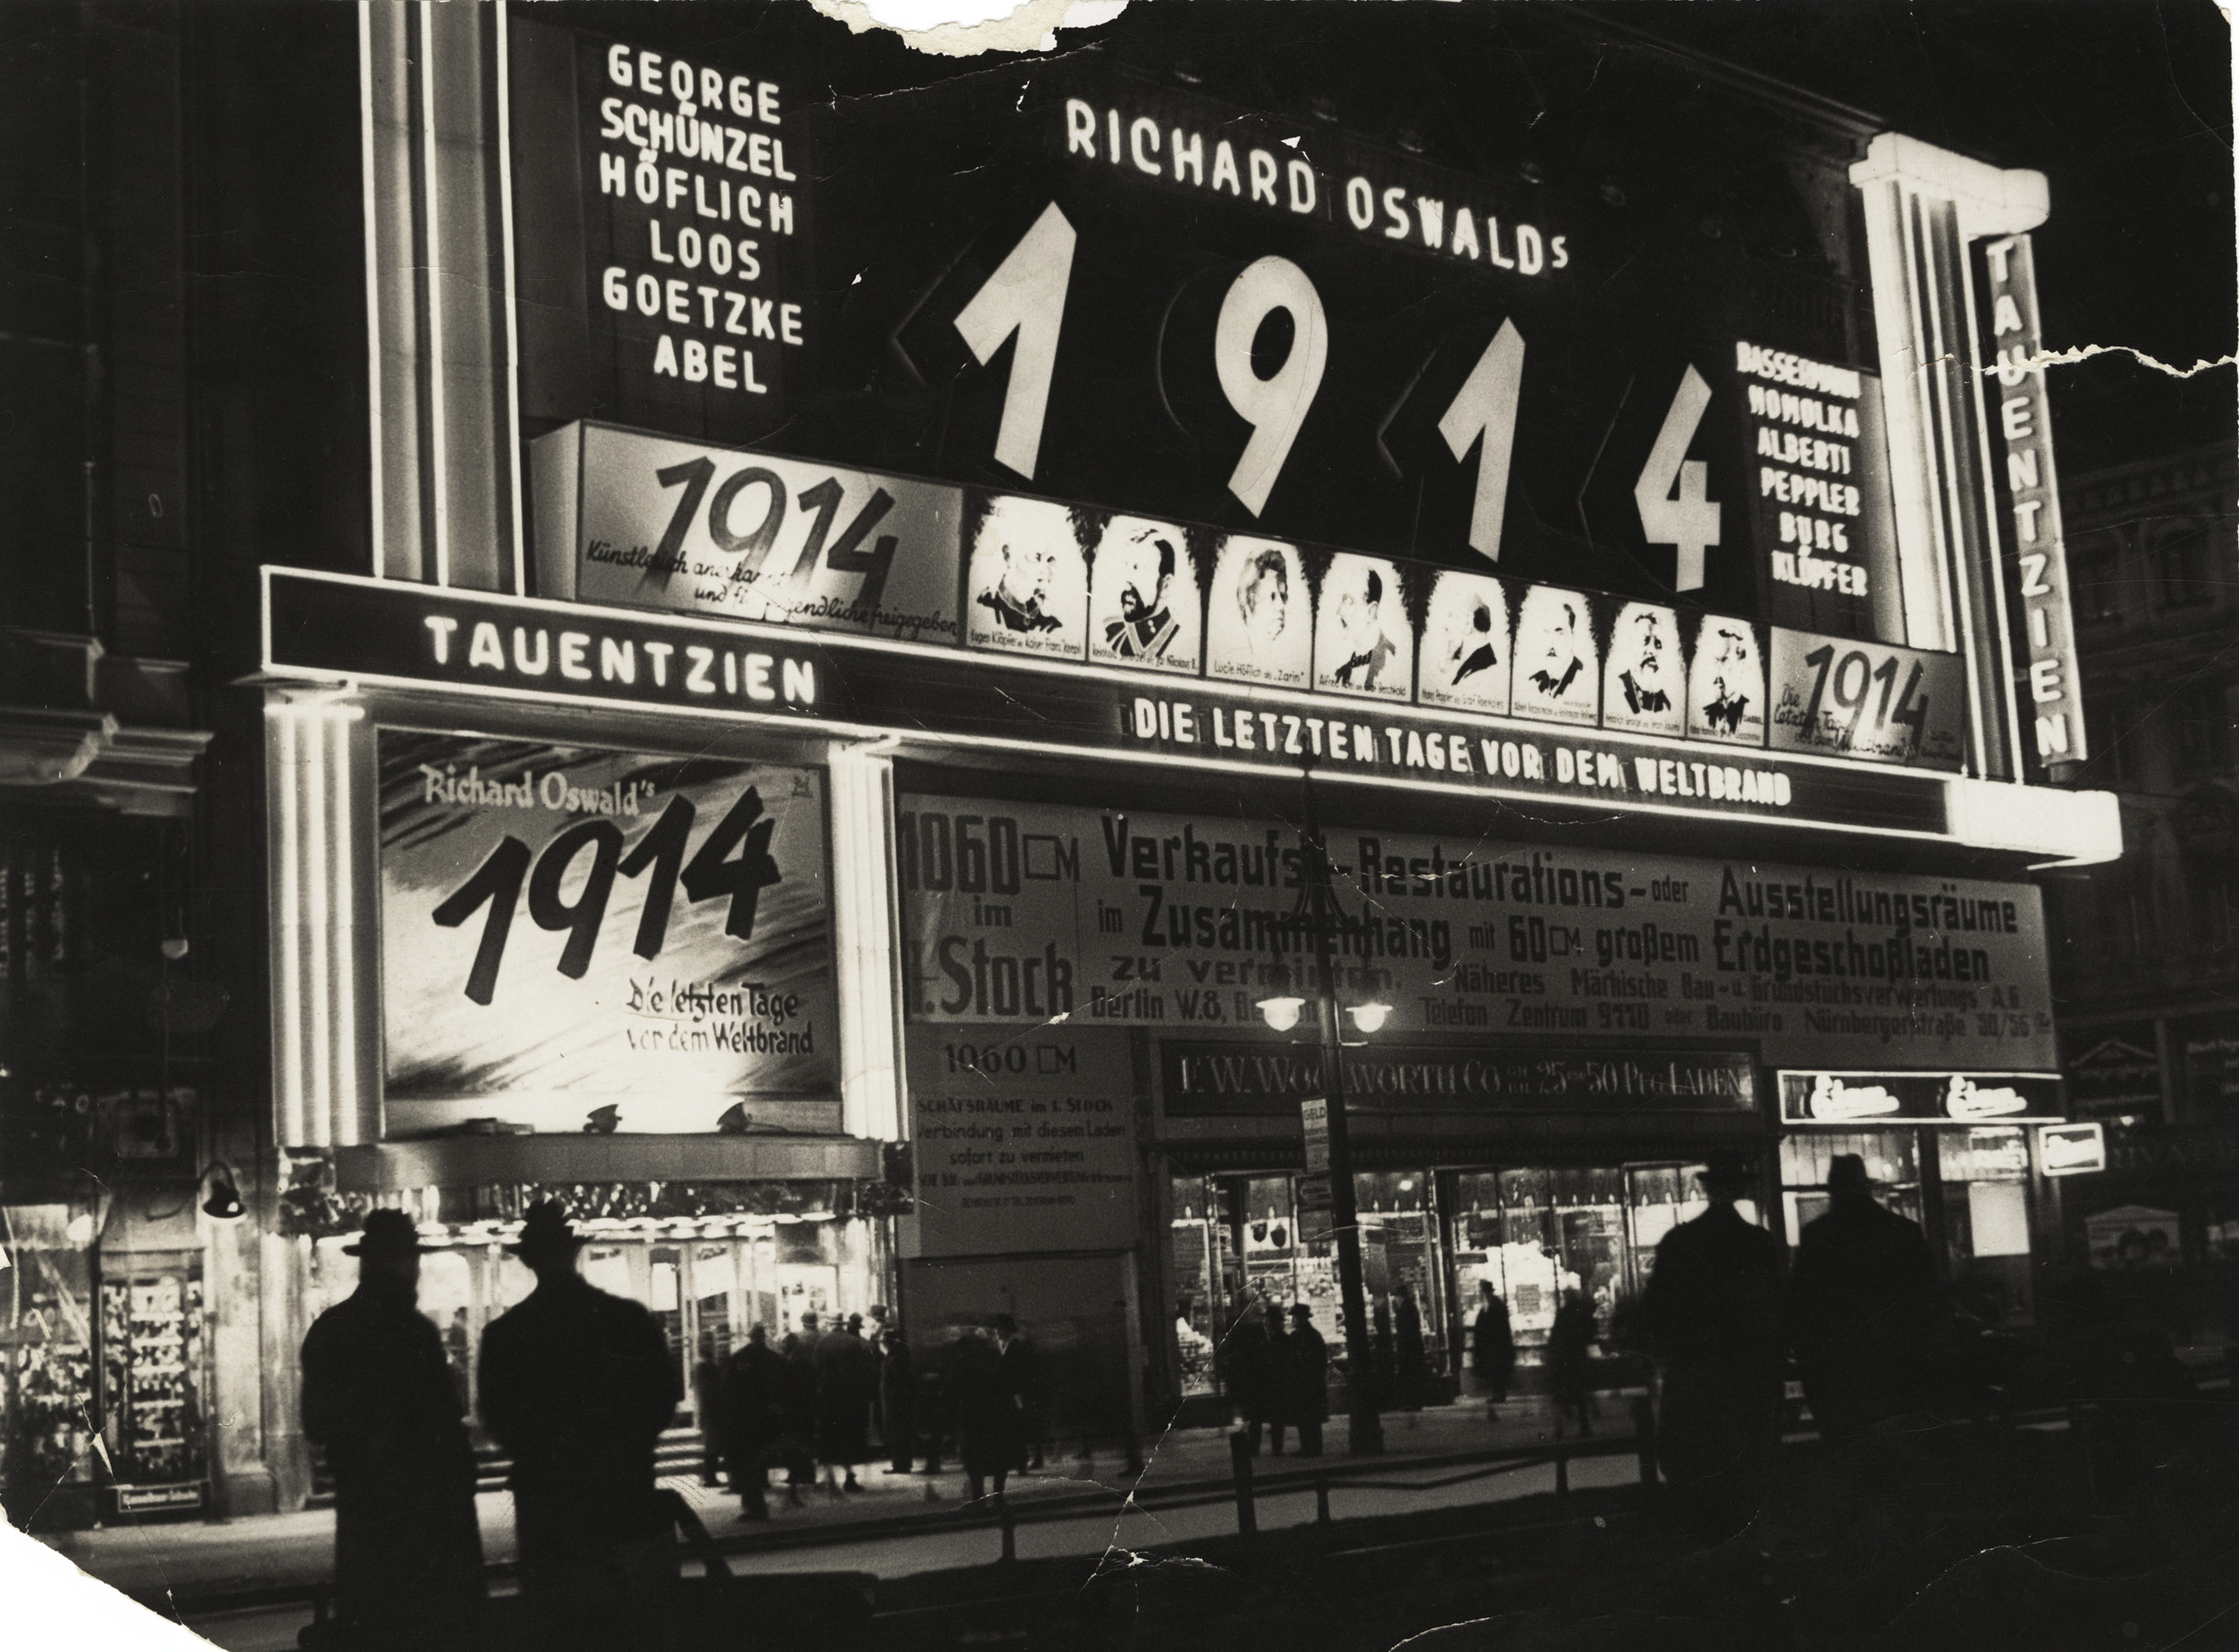 Black and white photo of the façade at night with illuminated advertisements and posters for Richard Oswald's film 1914